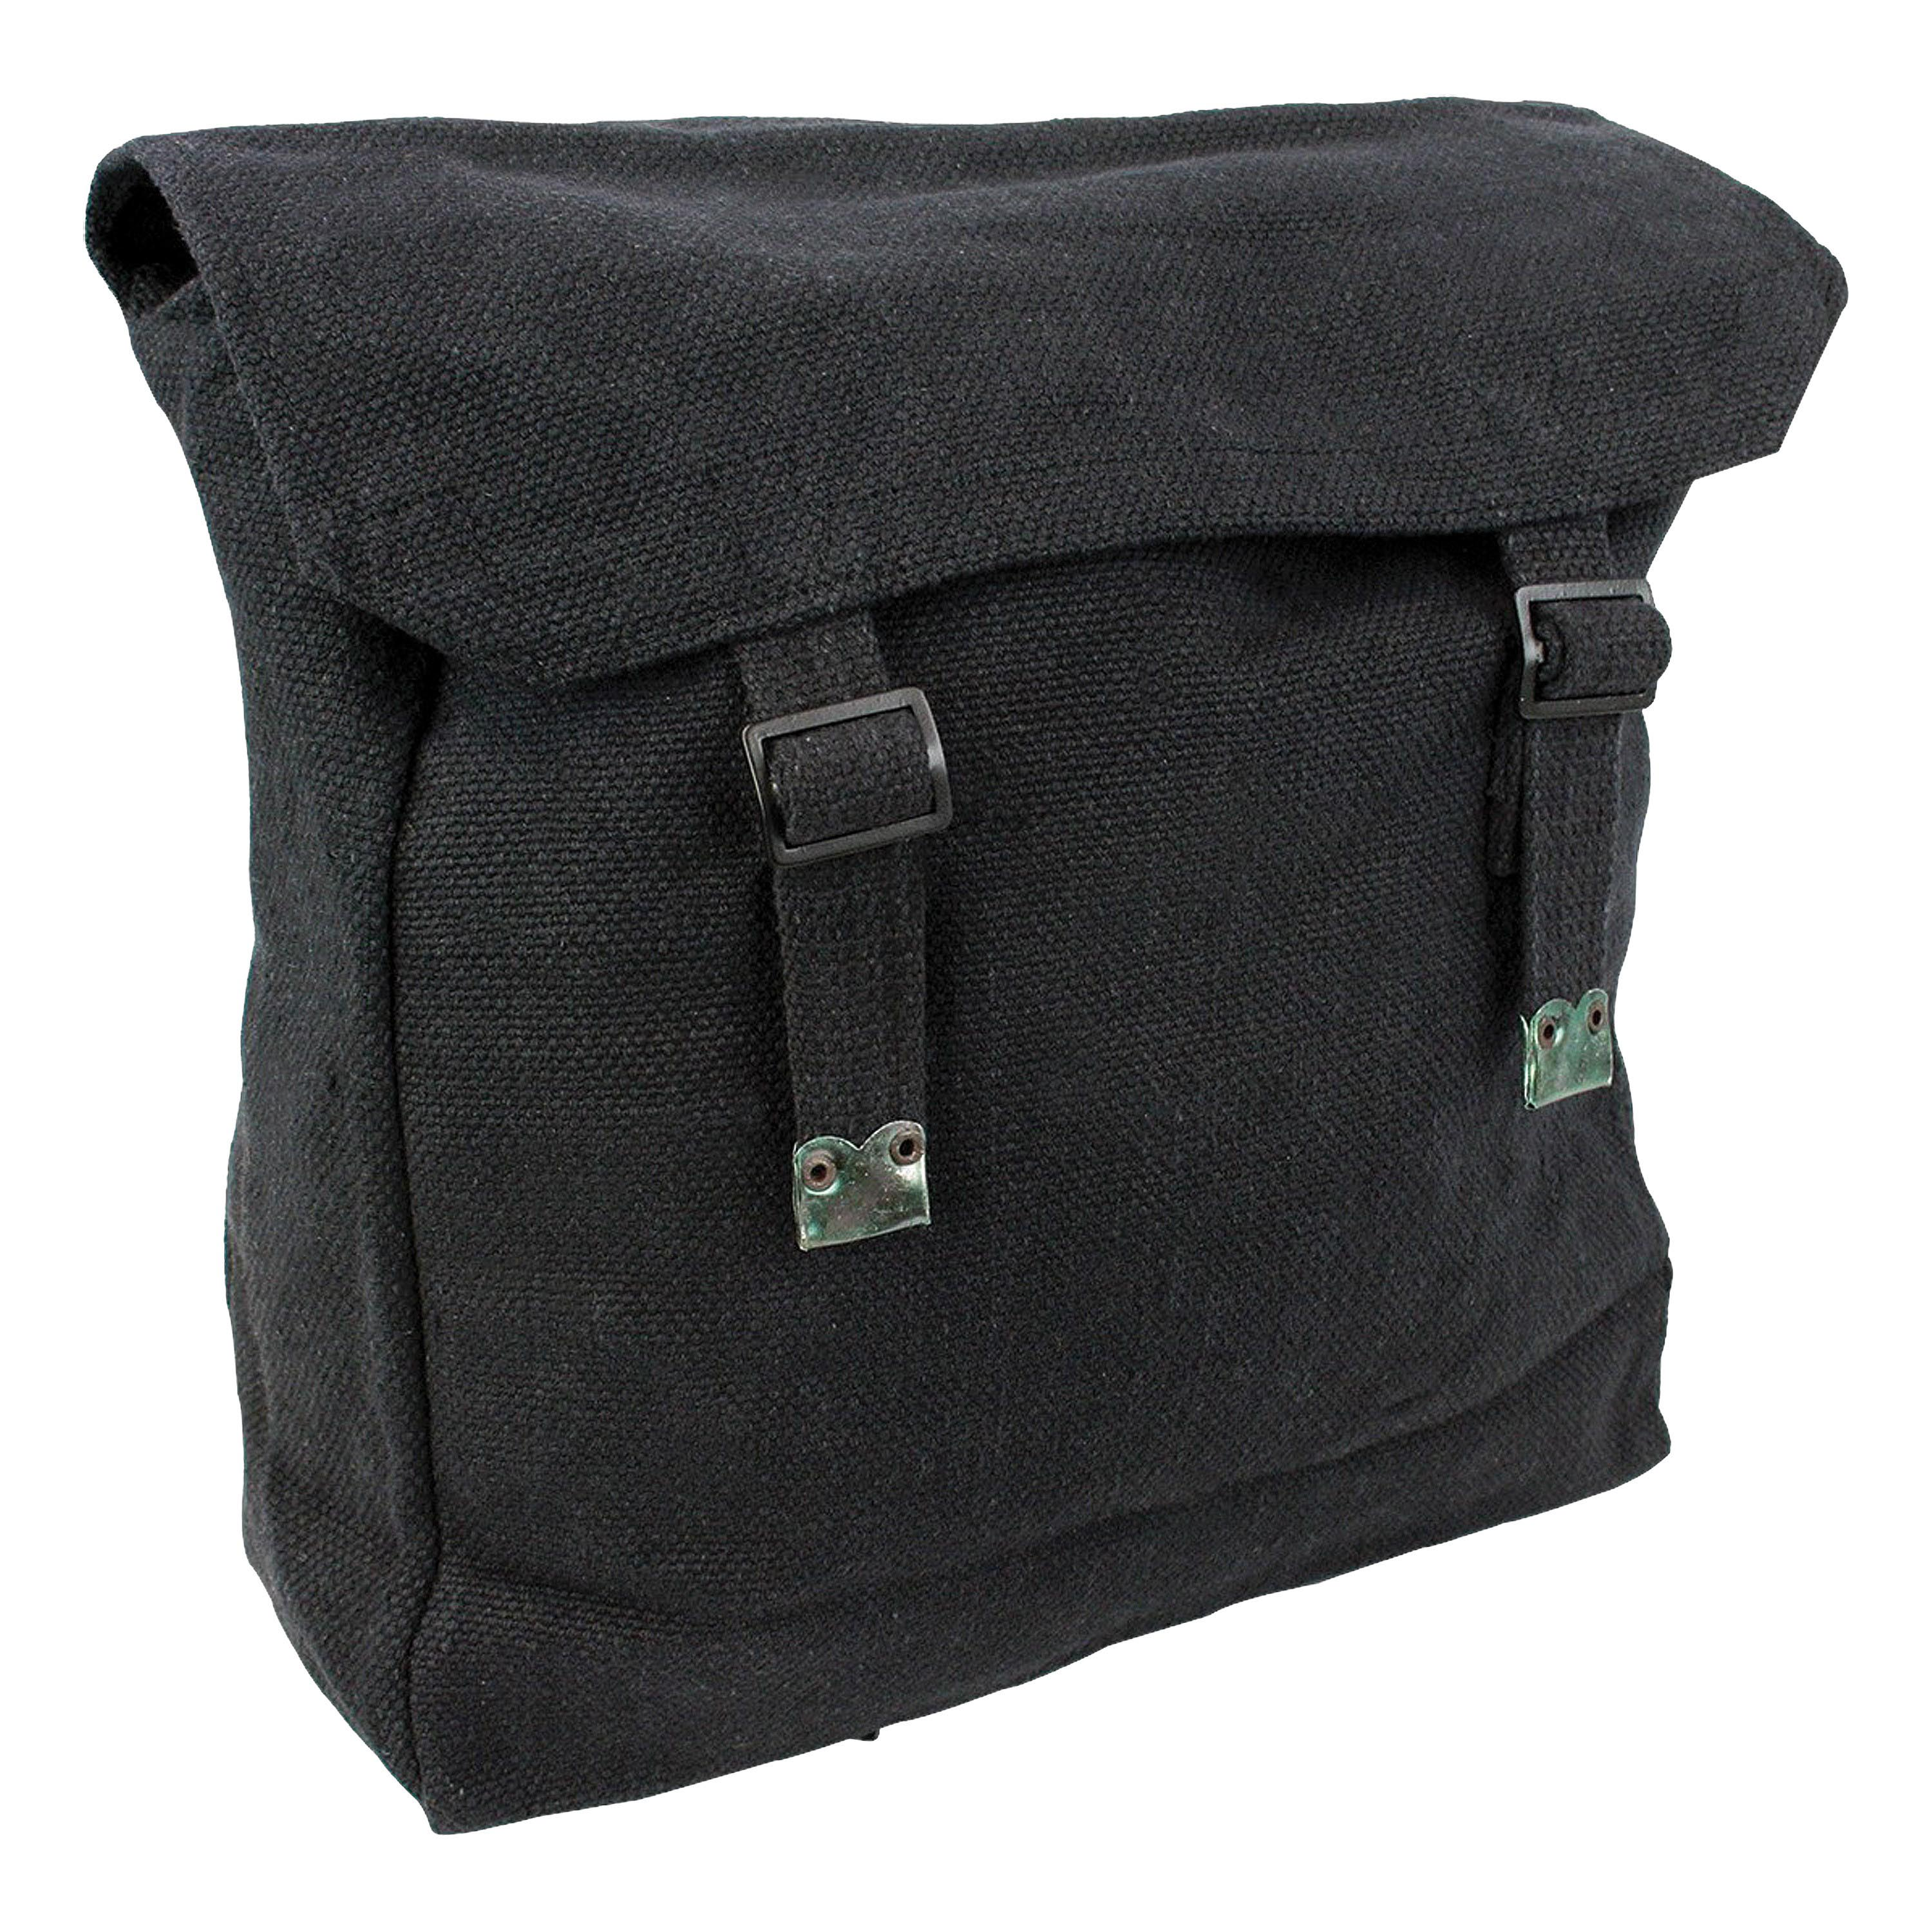 Highlander Provisions Pouch black